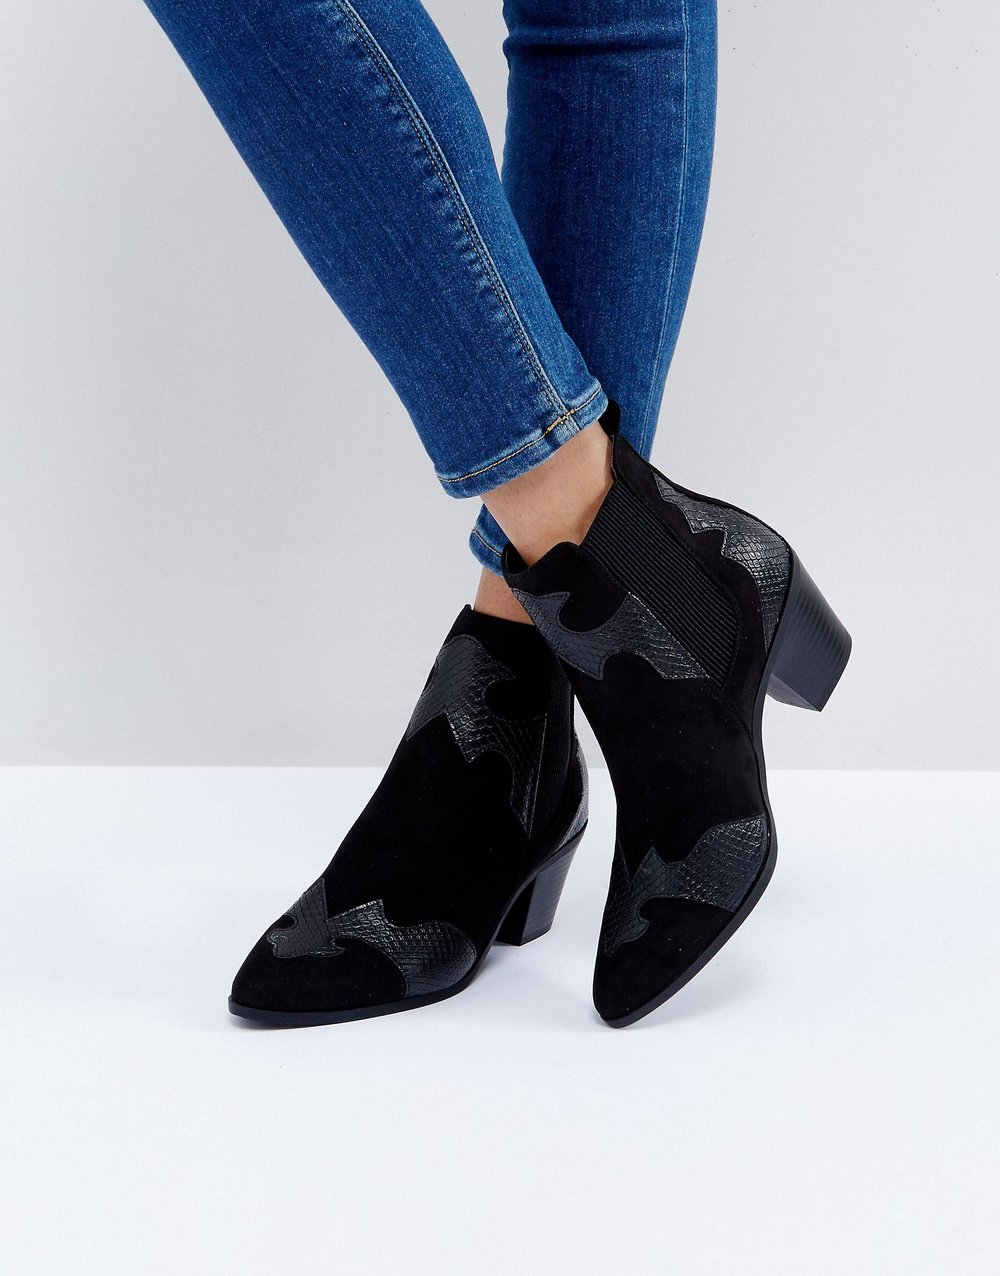 Black Western Booties - I love the western appliqué on these booties! It takes an average black ankle boot up to the next level. These are great every day booties for the fall, and would work well styled with a leather jacket or a cozy sweater!